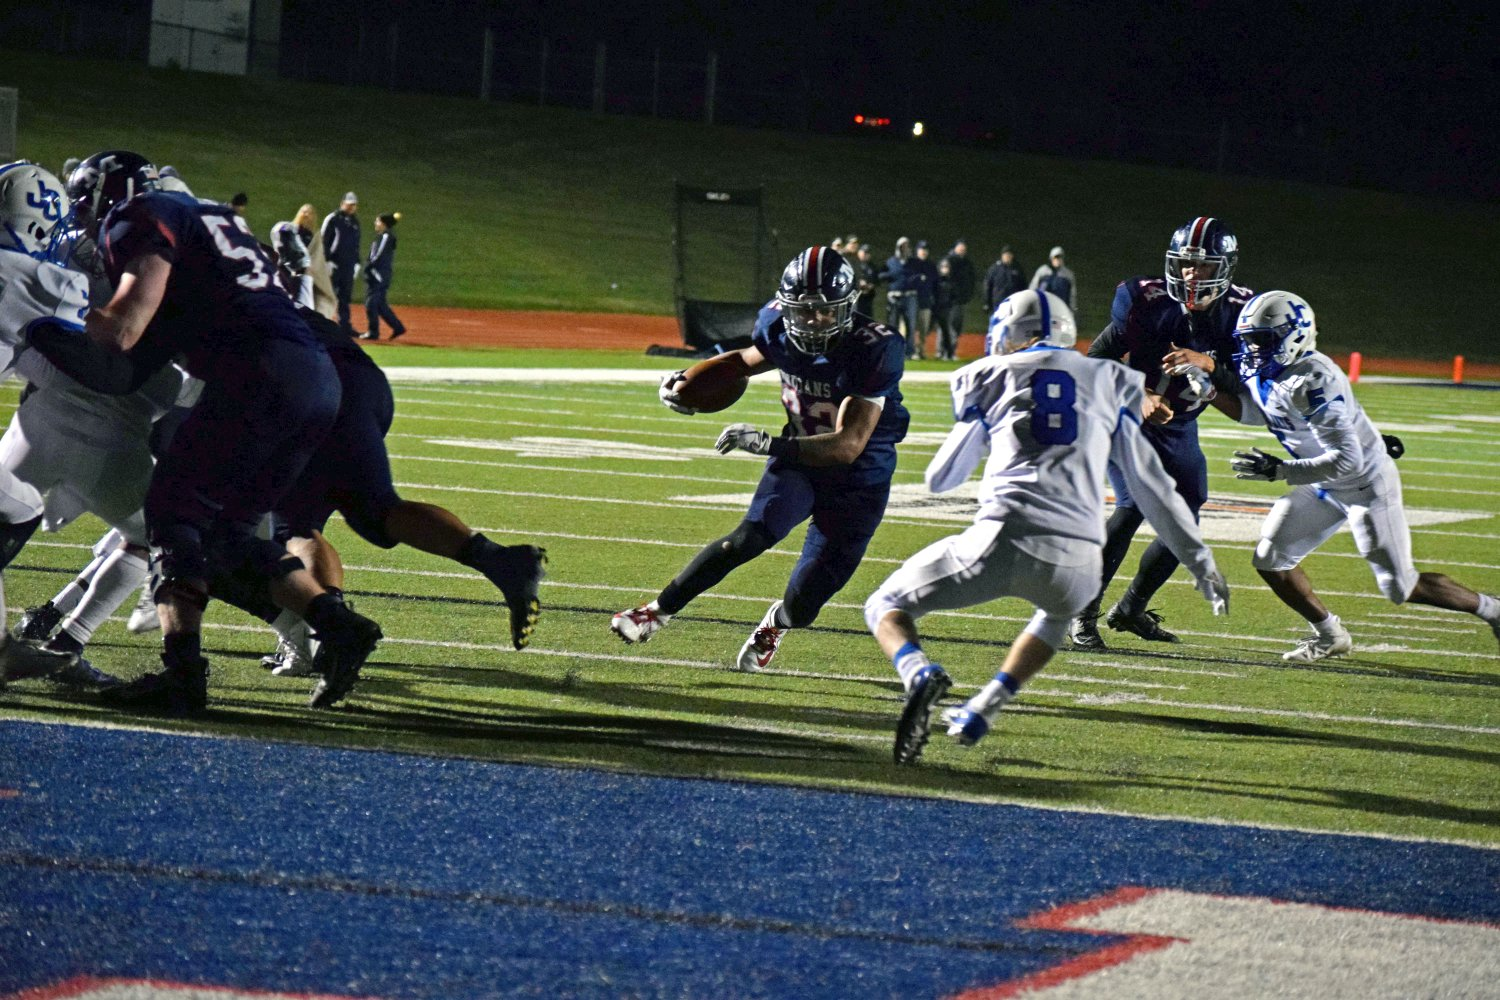 Senior BJ Young runs towards the endzone to score a touchdown for MHS. MHS and school rivals Junction City competed at Bishop Stadium on Oct. 11. The Indians won the game 31-28 after a very close match. Photo by Hailey Eilert